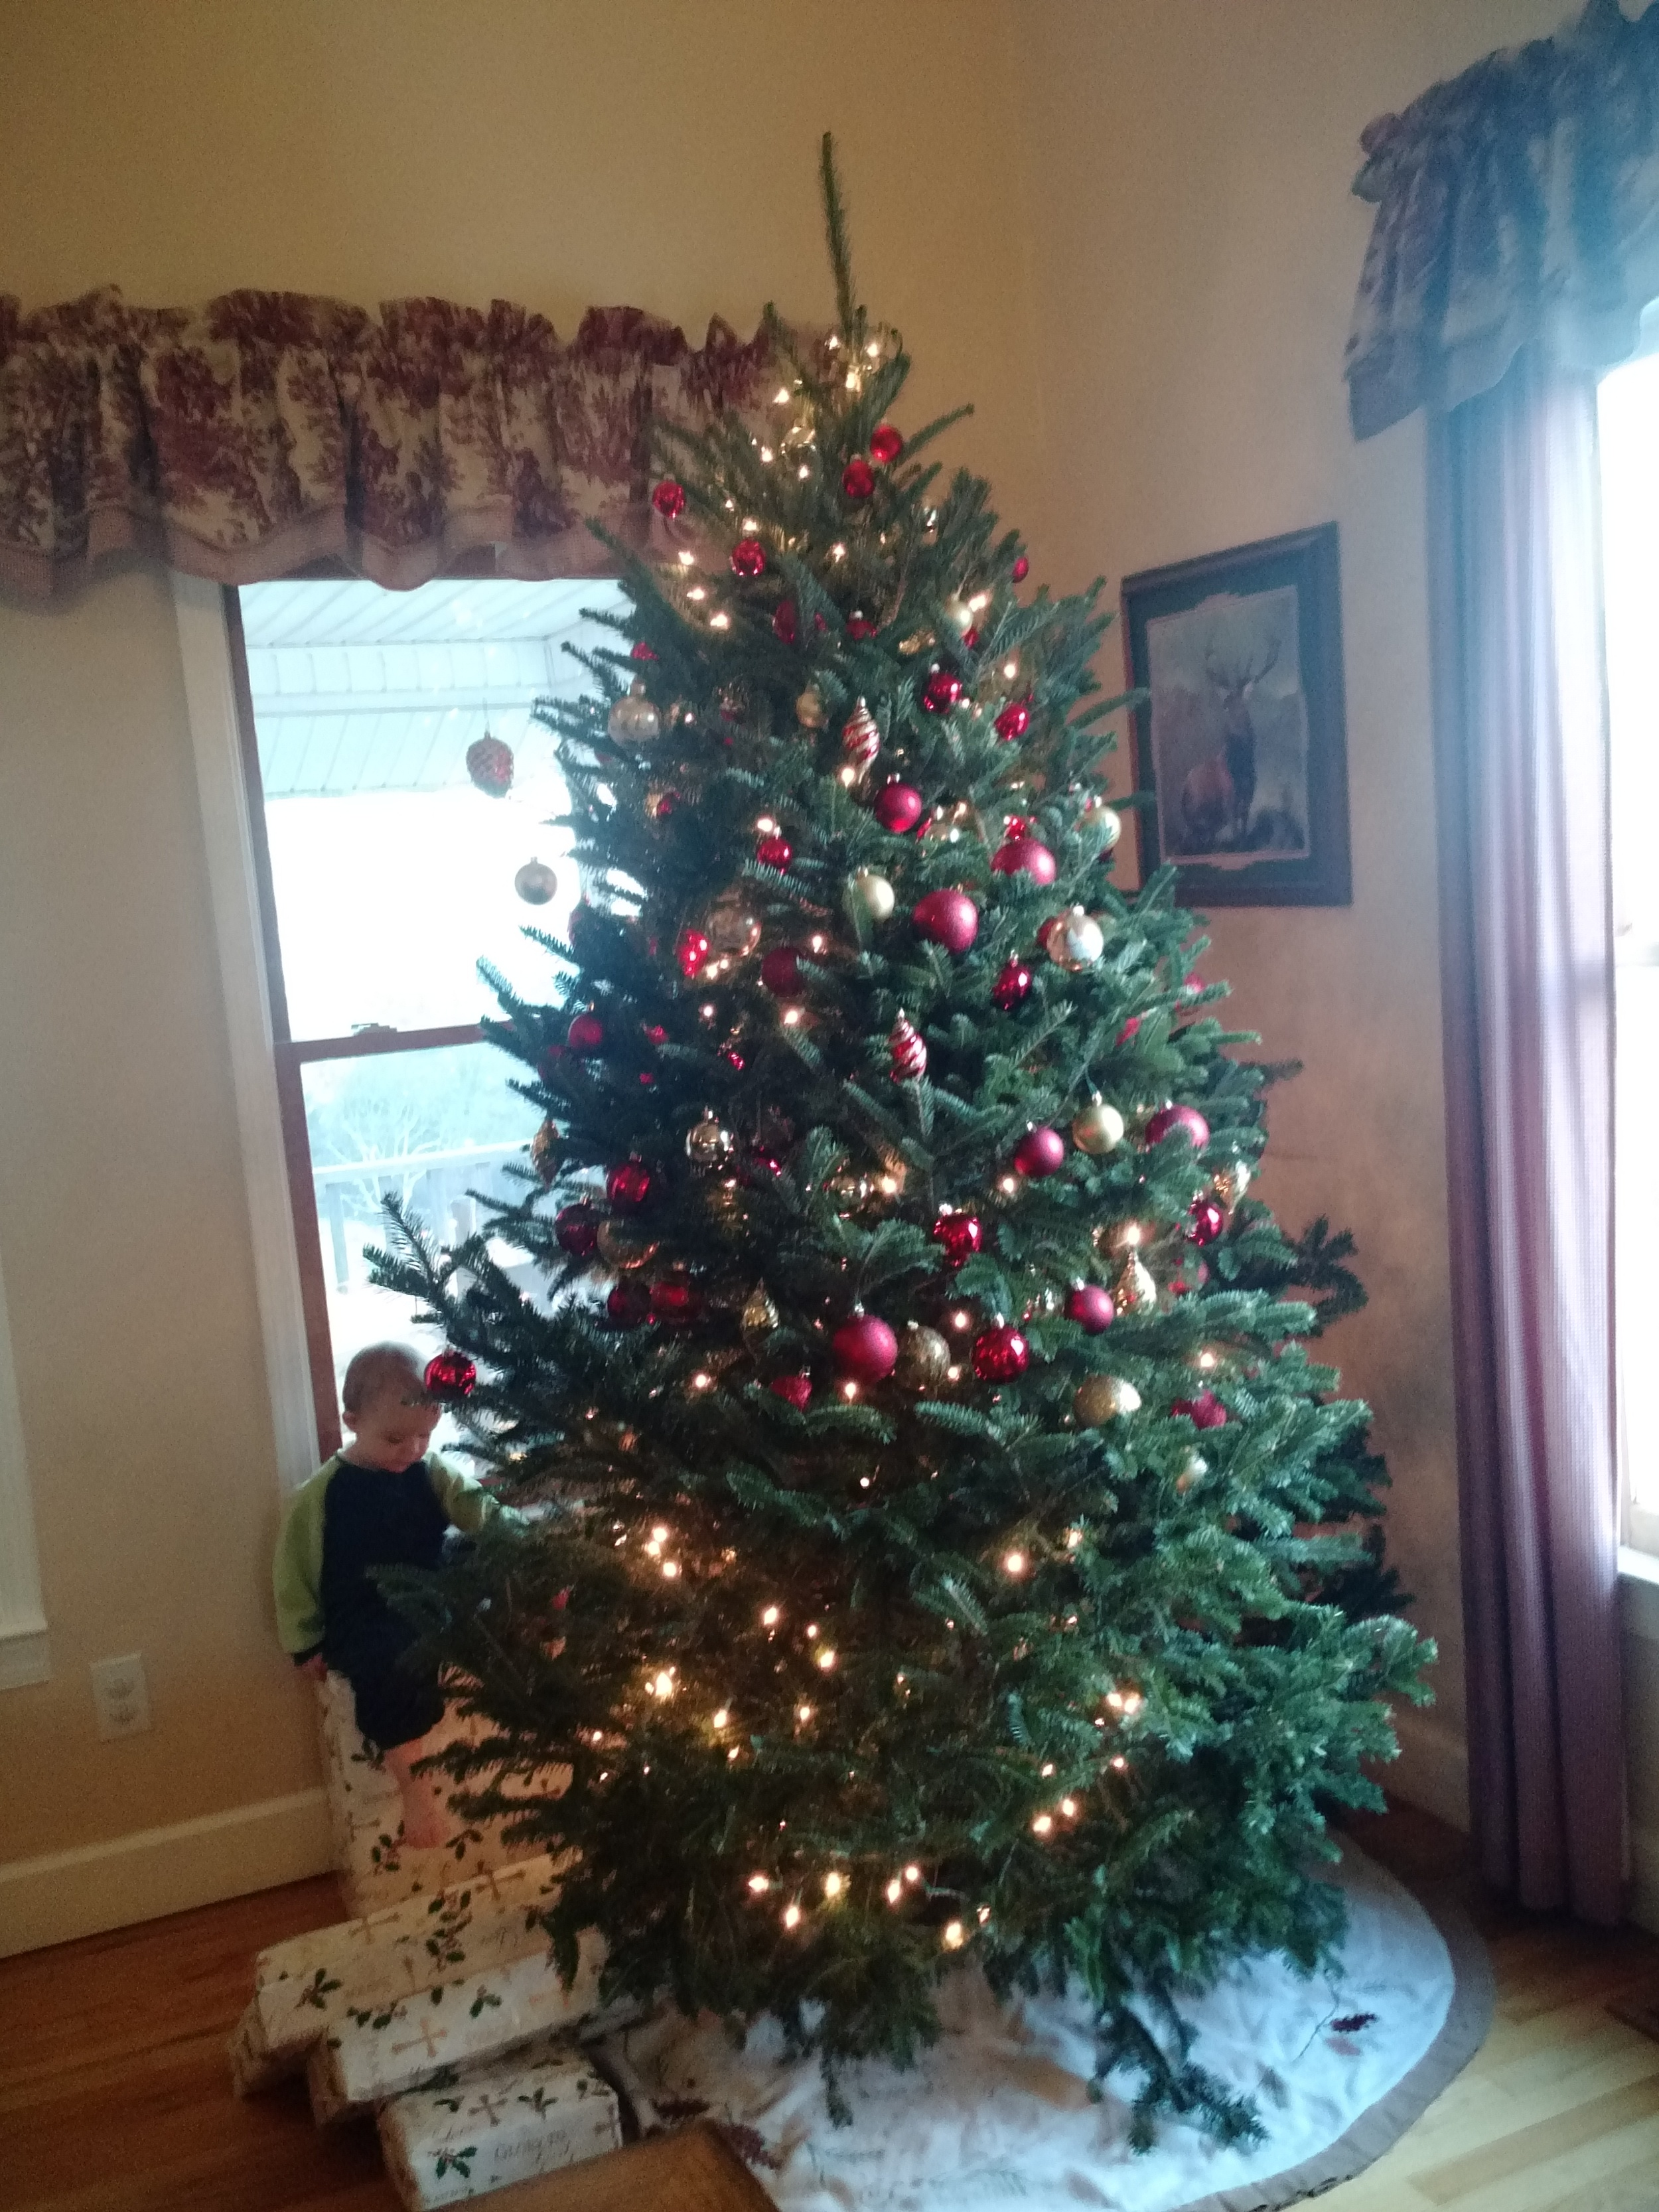 Have you ever seen a Christmas Tree decorated quite like this?